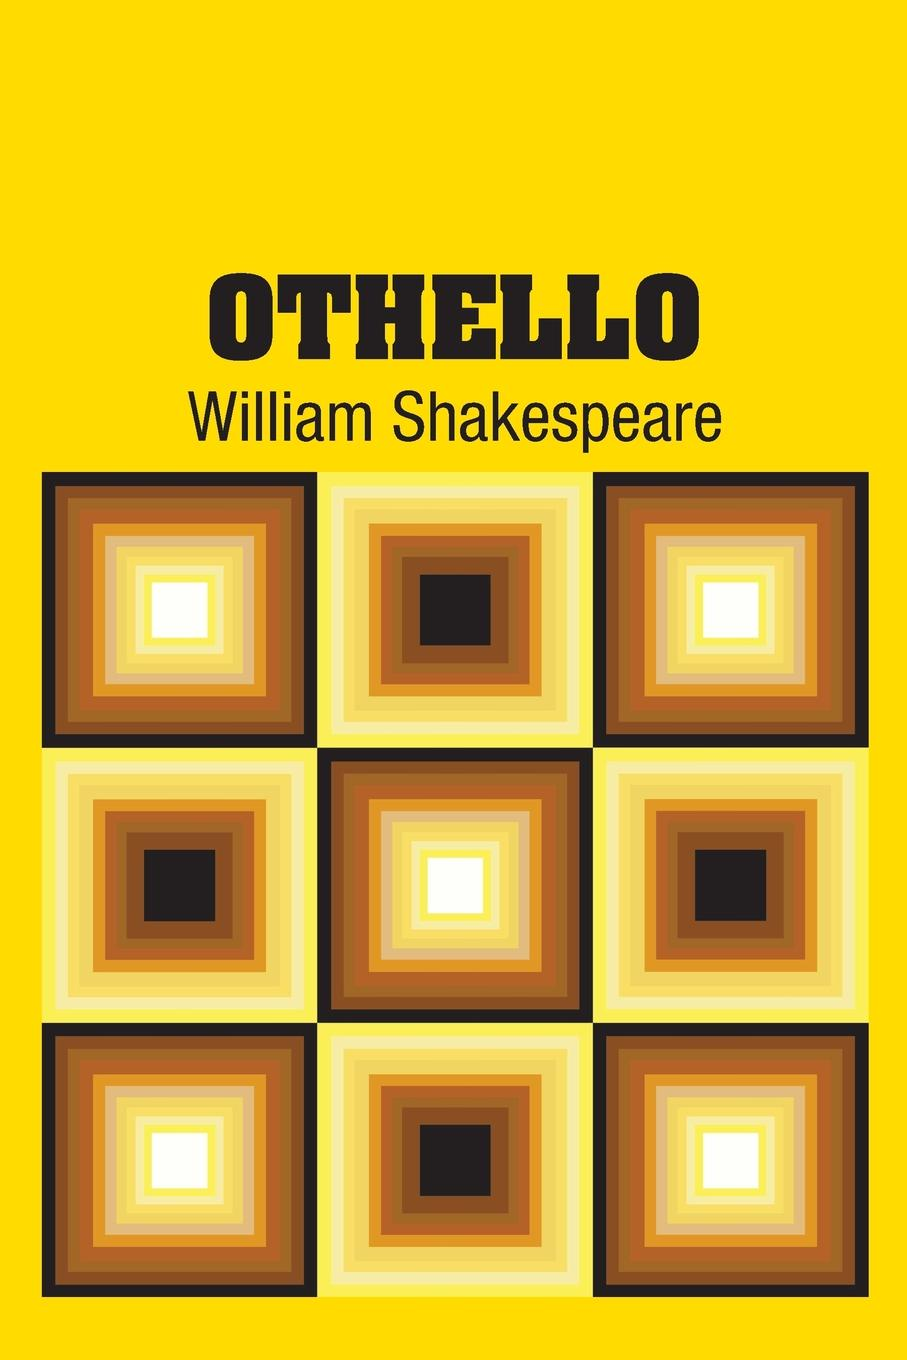 William Shakespeare Othello william shakespeare othello illustrated shakespeare